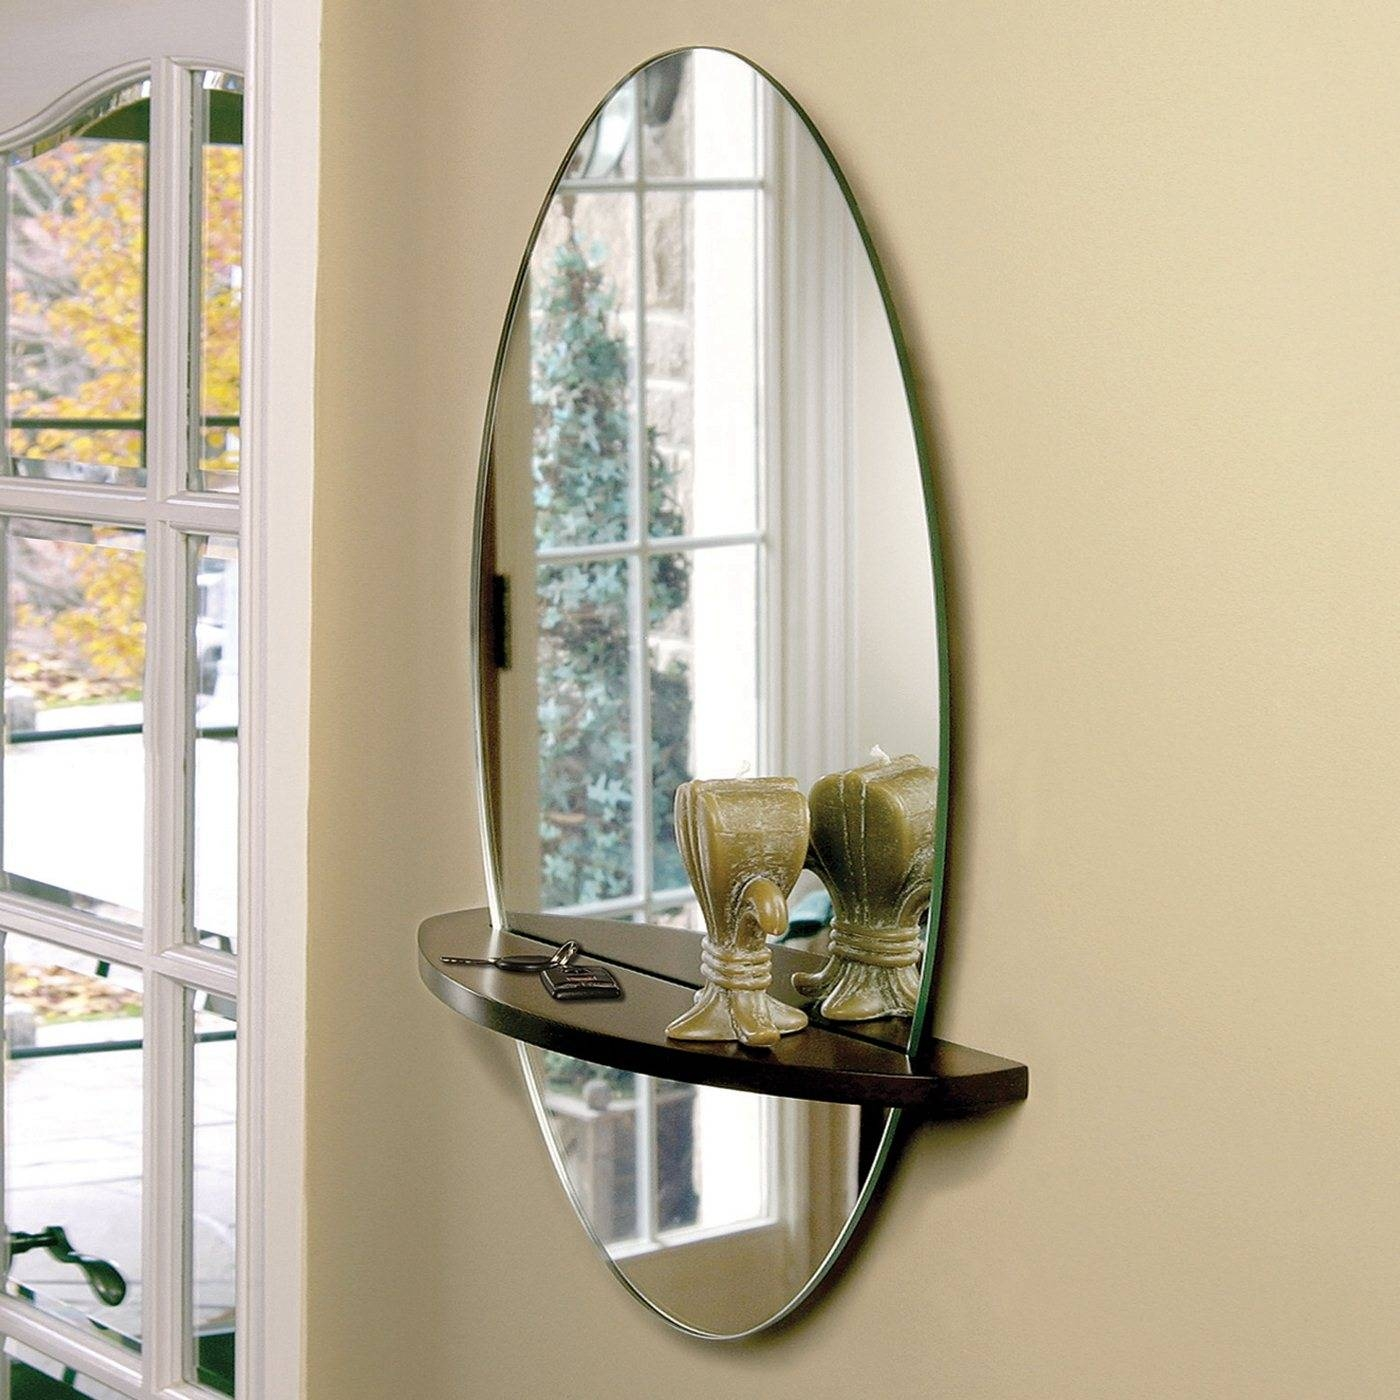 Nexxt Design Reflect Oval Wall Mirror Atg Stores - Dma Homes | #89256 in Modern Contemporary Wall Mirrors (Image 12 of 15)